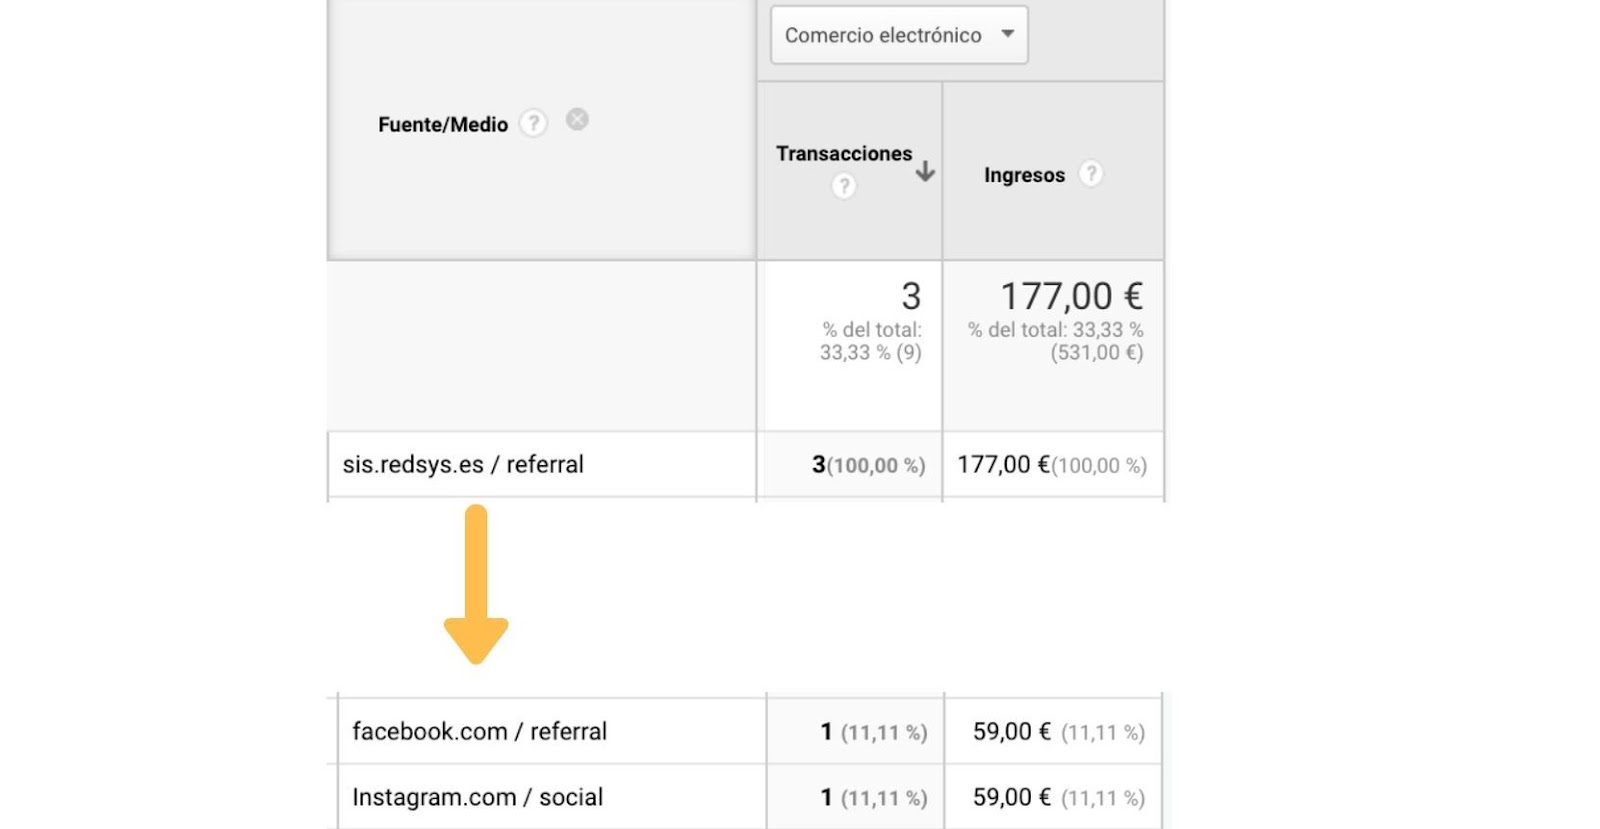 redsys.es como quitarlo de analytics